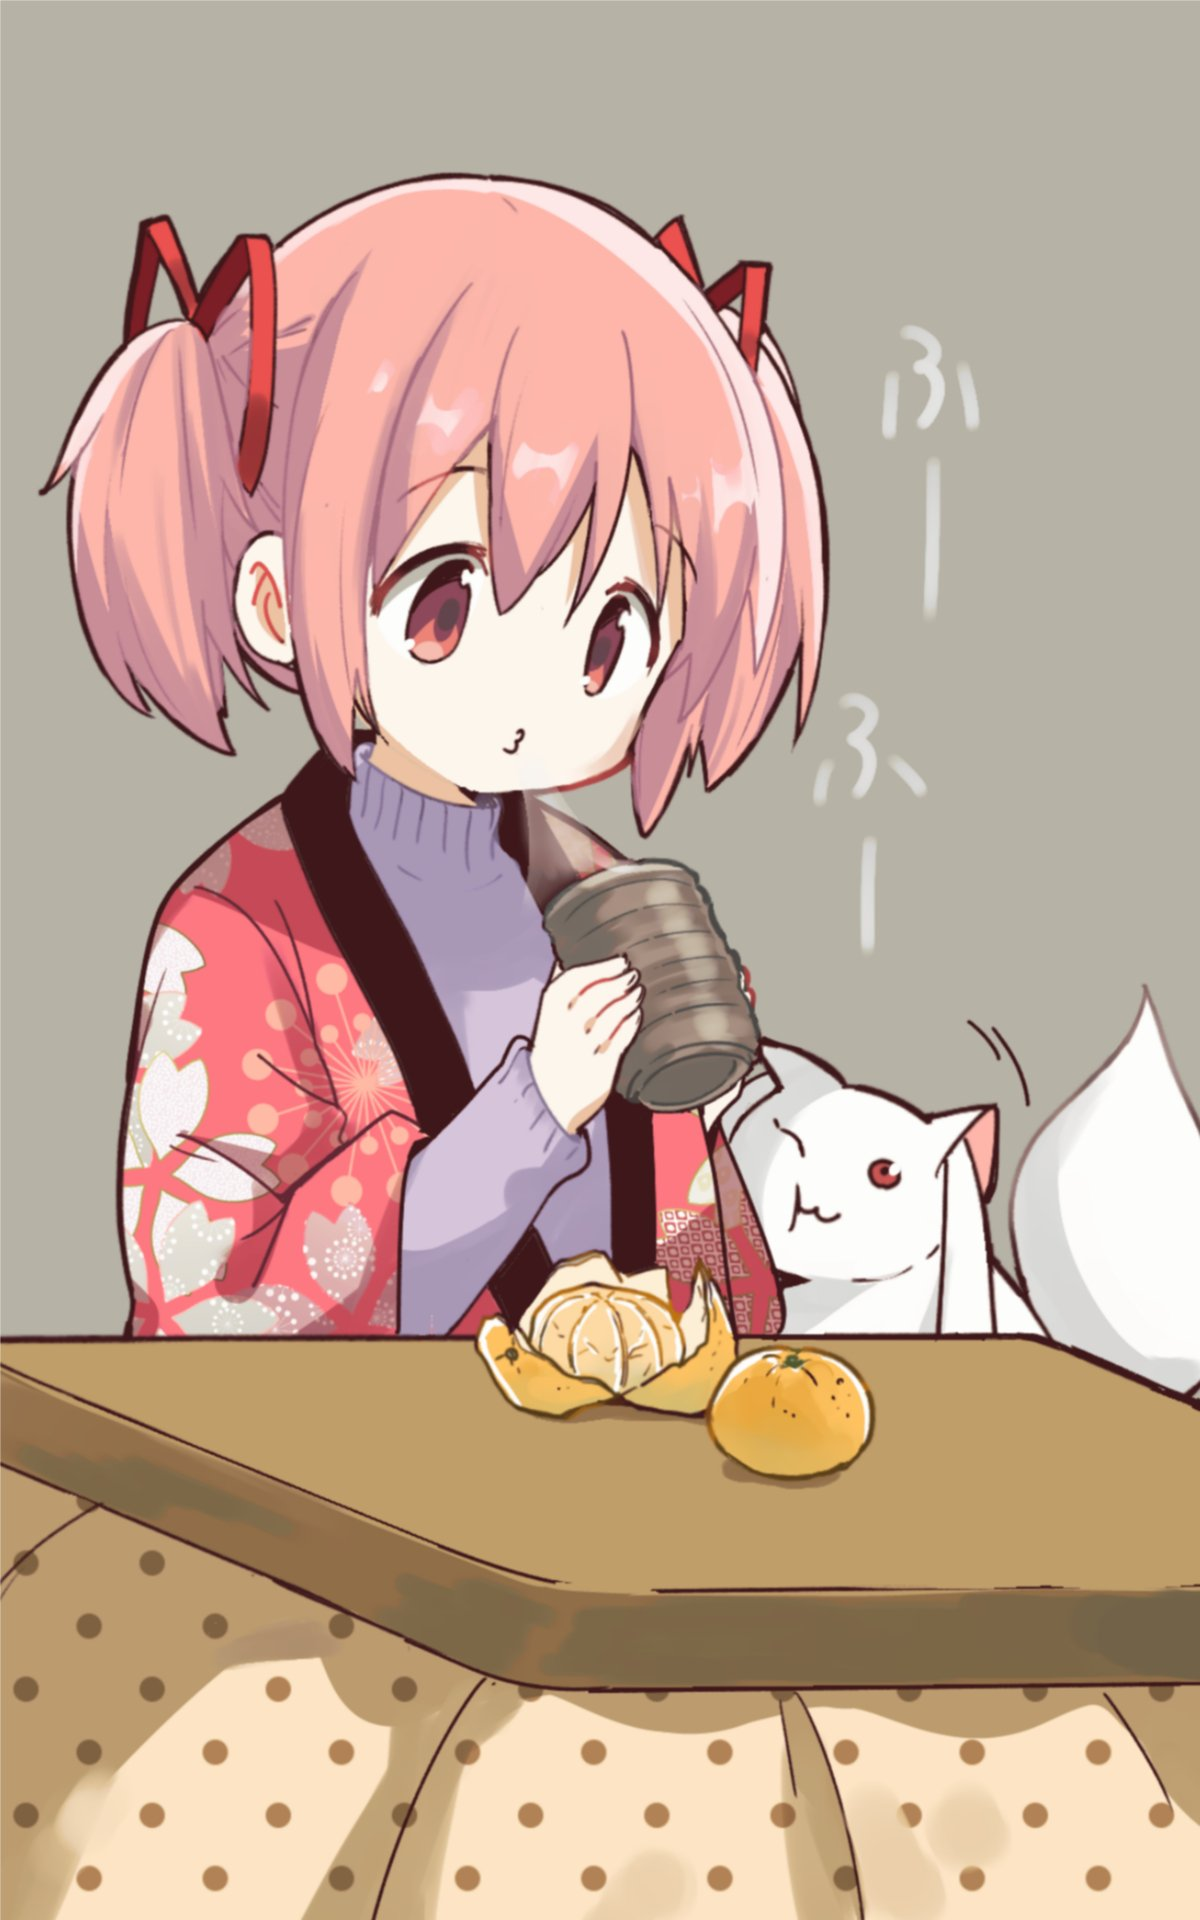 1girl black_outline blanket blowing blowing_steam cheek_press commentary creature cup eyebrows_visible_through_hair facing_viewer flat_chest food fruit grey_background hair_ribbon hands_up hanten_(clothes) high_collar highres holding holding_cup japanese_clothes kaname_madoka kotatsu kyubey leaf_print long_sleeves looking_down mahou_shoujo_madoka_magica mandarin_orange motion_lines no_nose orange outline pink_eyes pink_hair polka_dot puckered_lips purple_sweater red_ribbon ribbon shiny shiny_hair short_twintails simple_background solo steam sweater symbol_commentary table tareme translation_request tsubaki_(tatajd) twintails under_kotatsu under_table unmoving_pattern yunomi